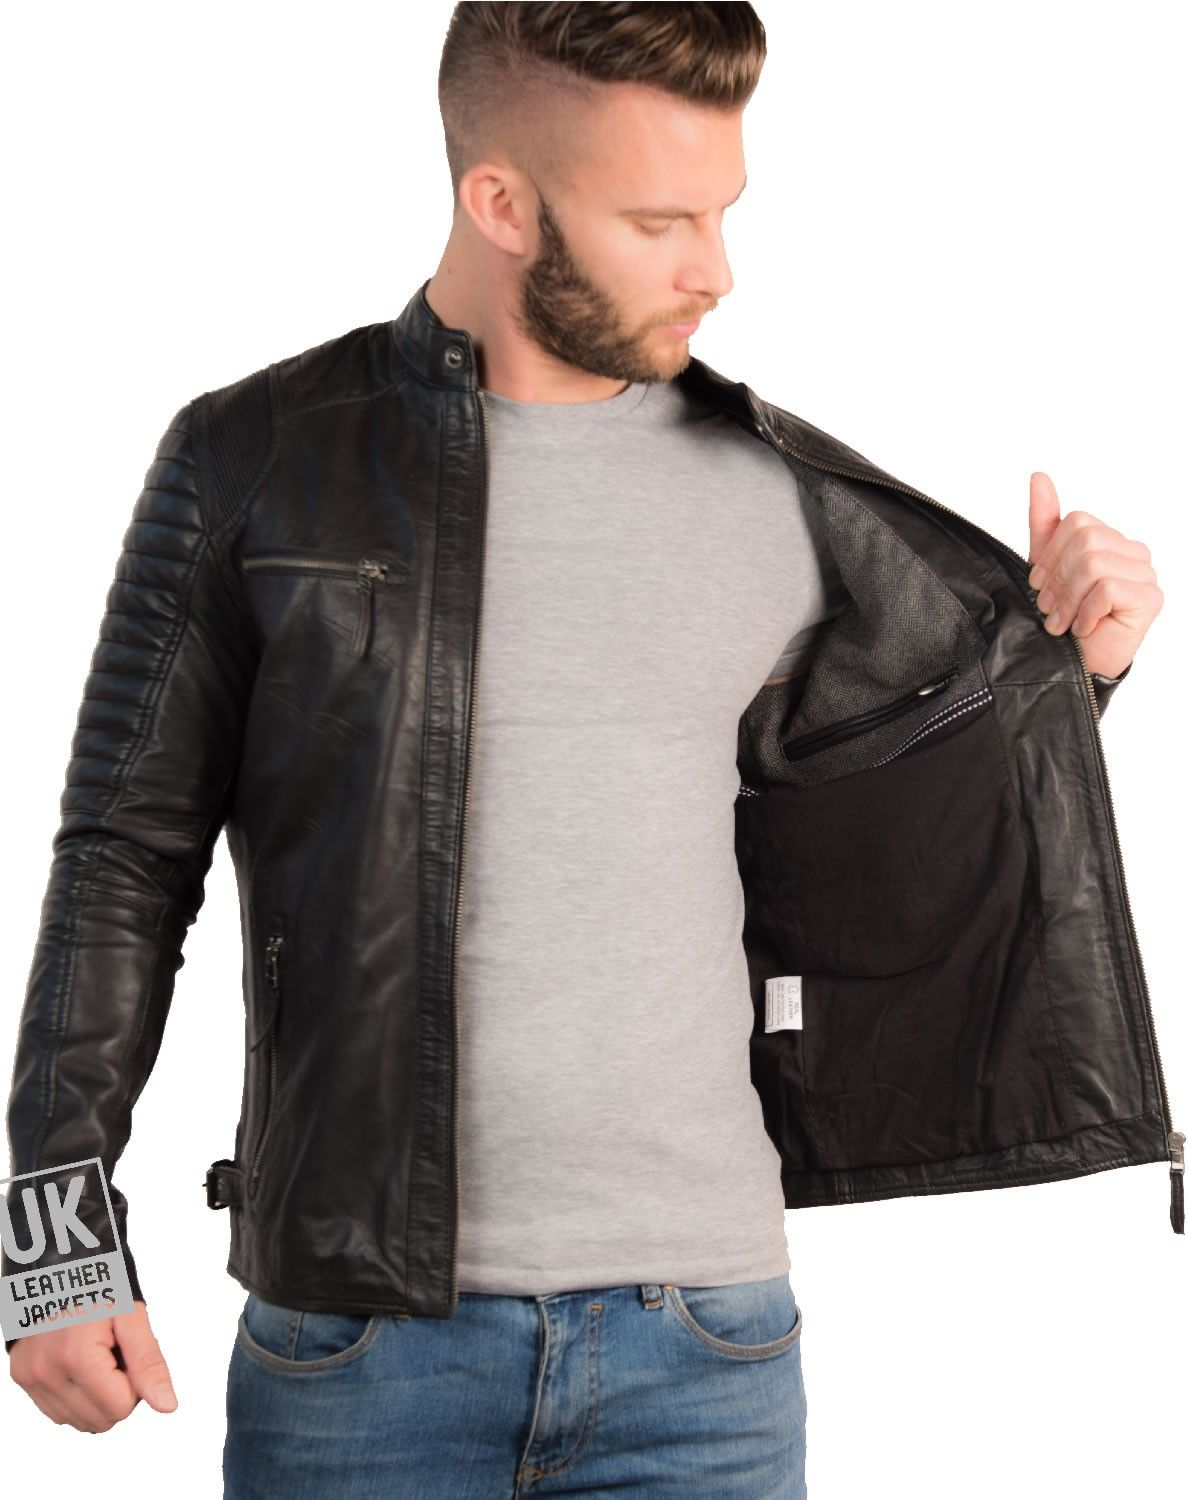 Mens Black Leather Biker Jacket UK LJ Black leather